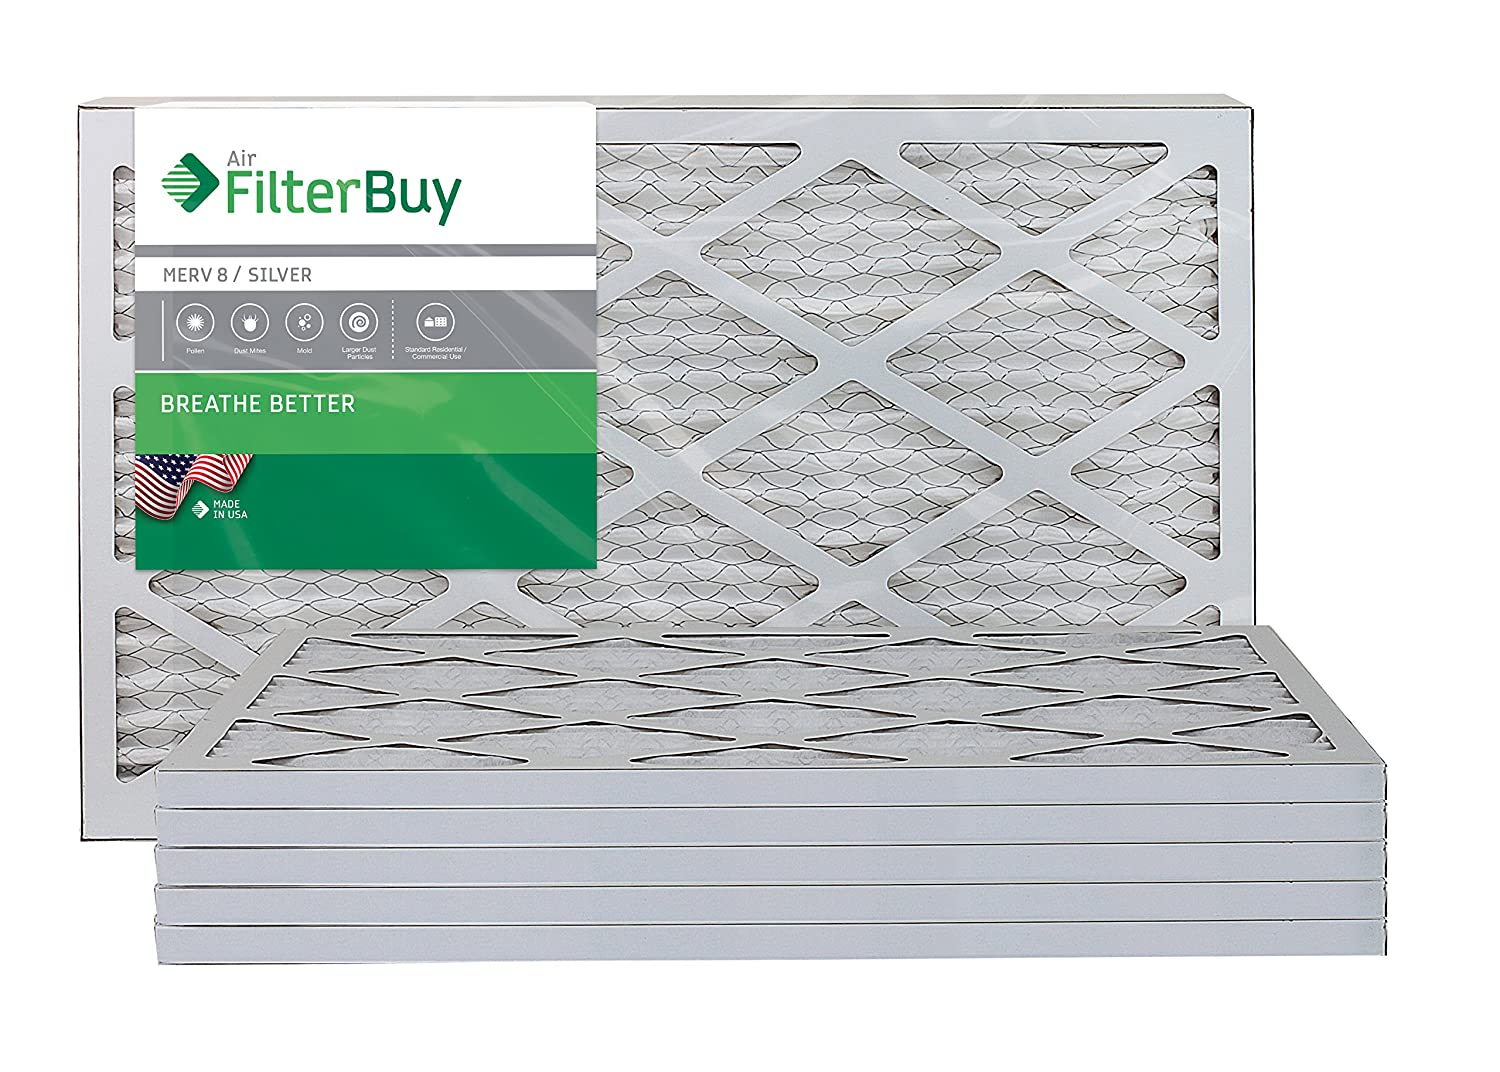 FilterBuy 14x20x1 MERV 8 Pleated AC Furnace Air Filter, (Pack of 6 Filters), 14x20x1 – Silver